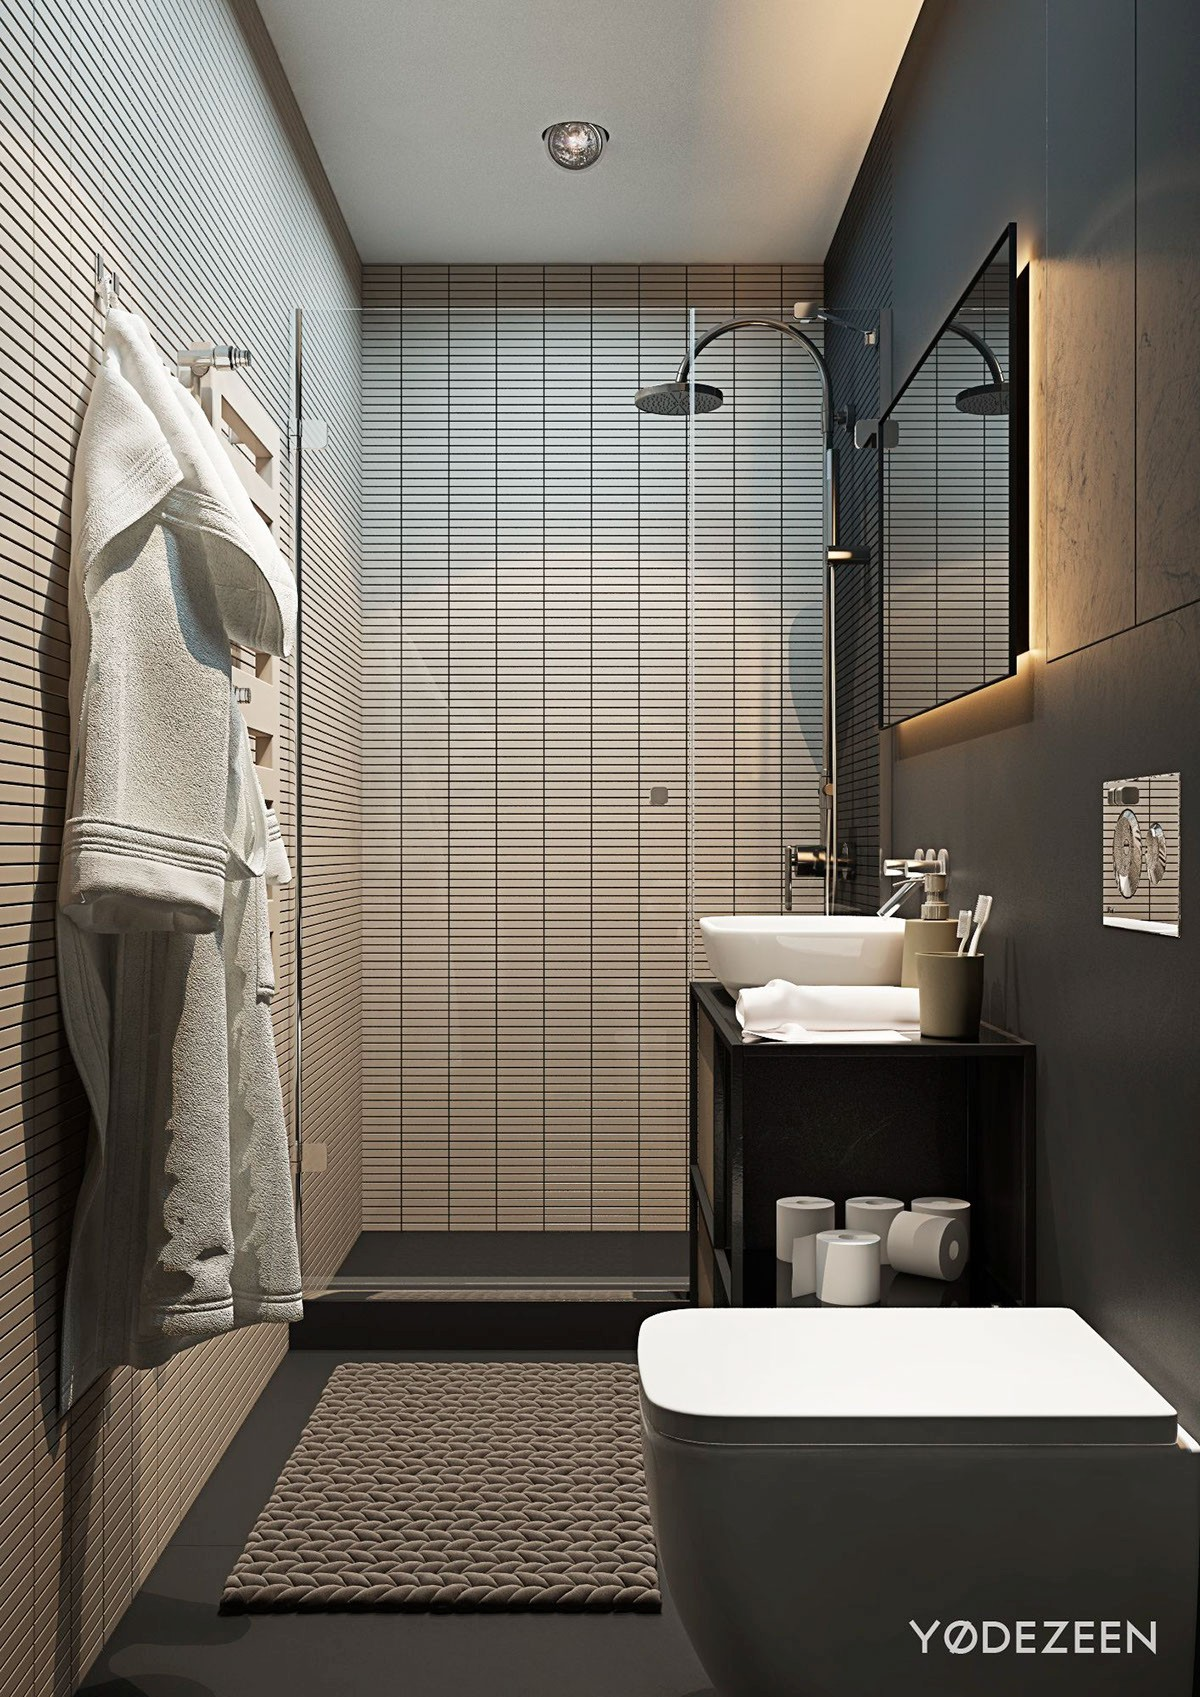 Small Apartment Bathroom Ideas Amazing Small Studio Apartments with Beautiful Design Bathroom Tile Color Image